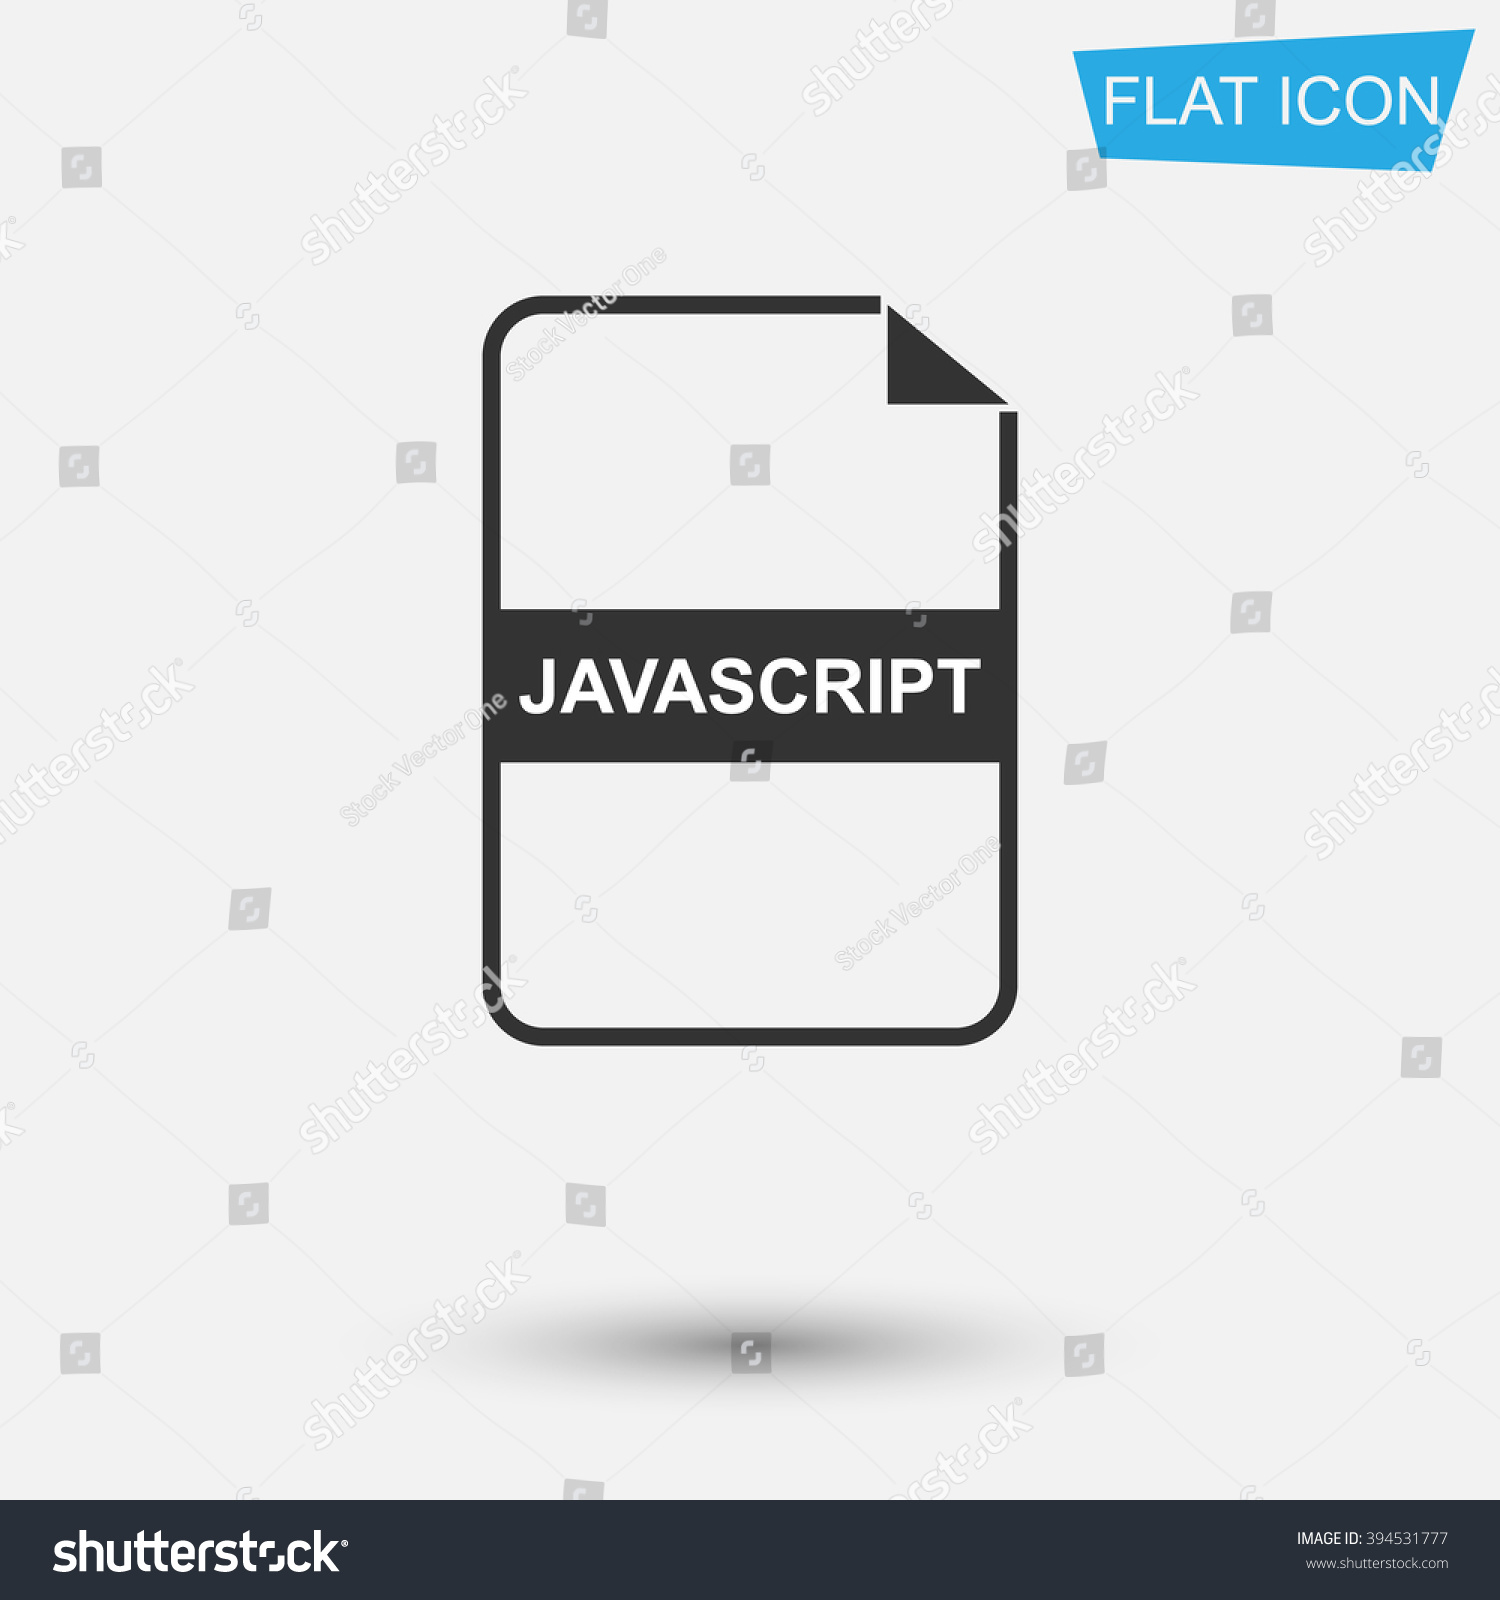 Javascript File Extension Flat Symbol Pictogram Stock Vector